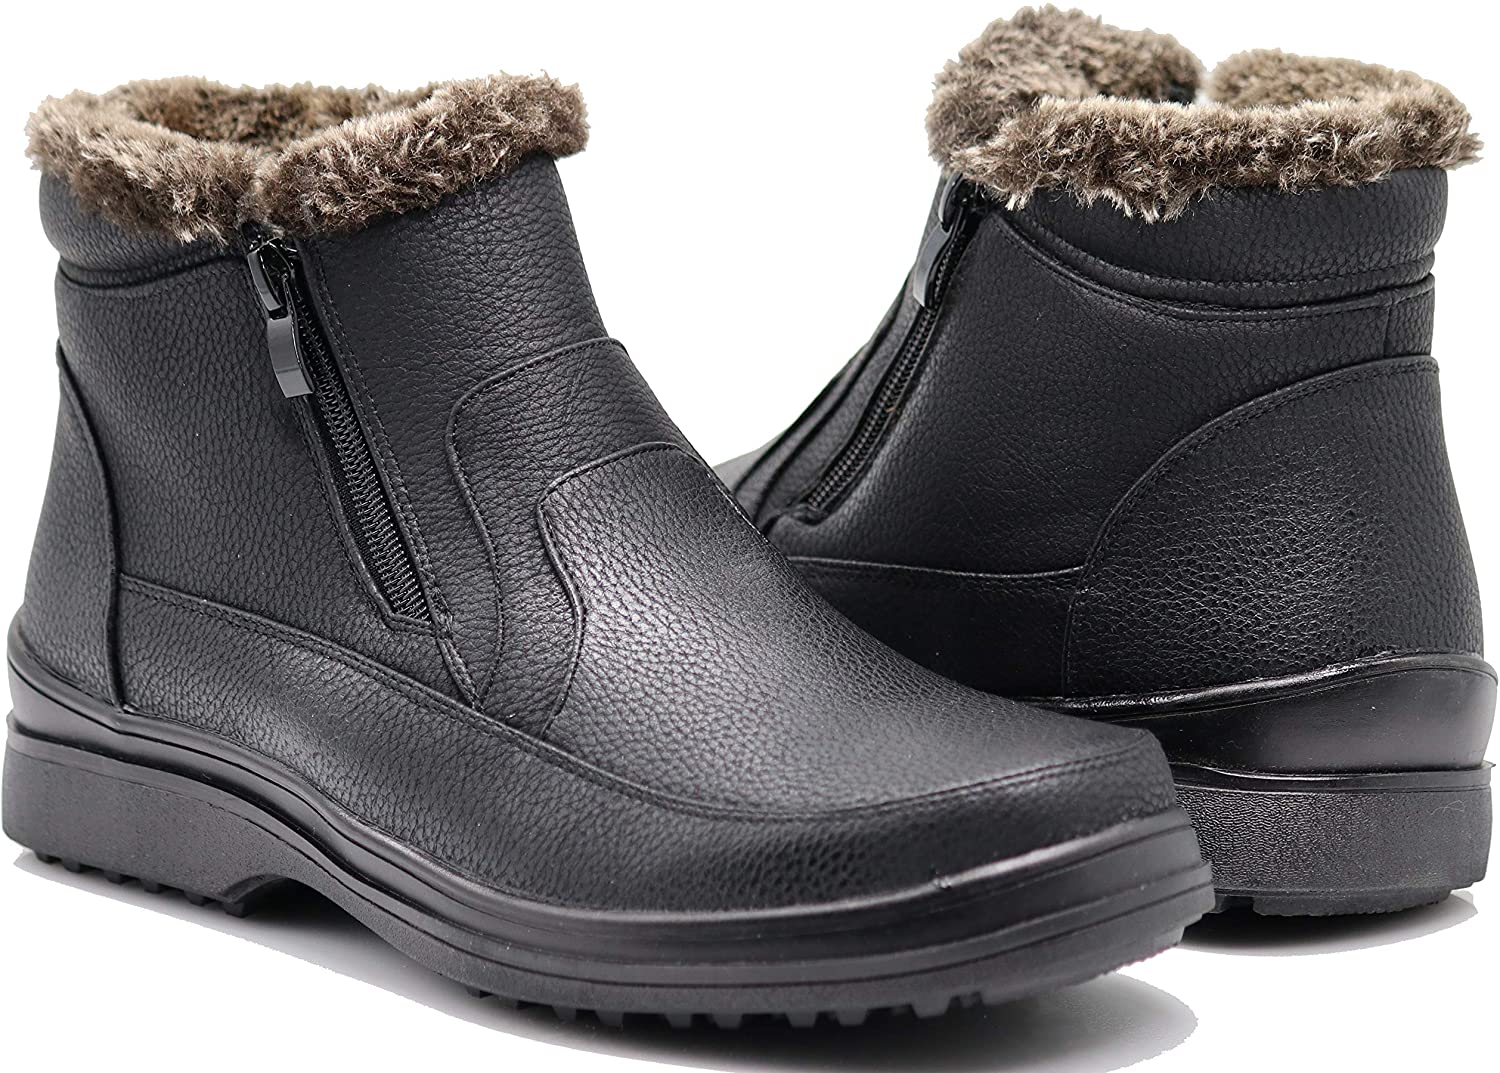 How to waterproof leather snow boot